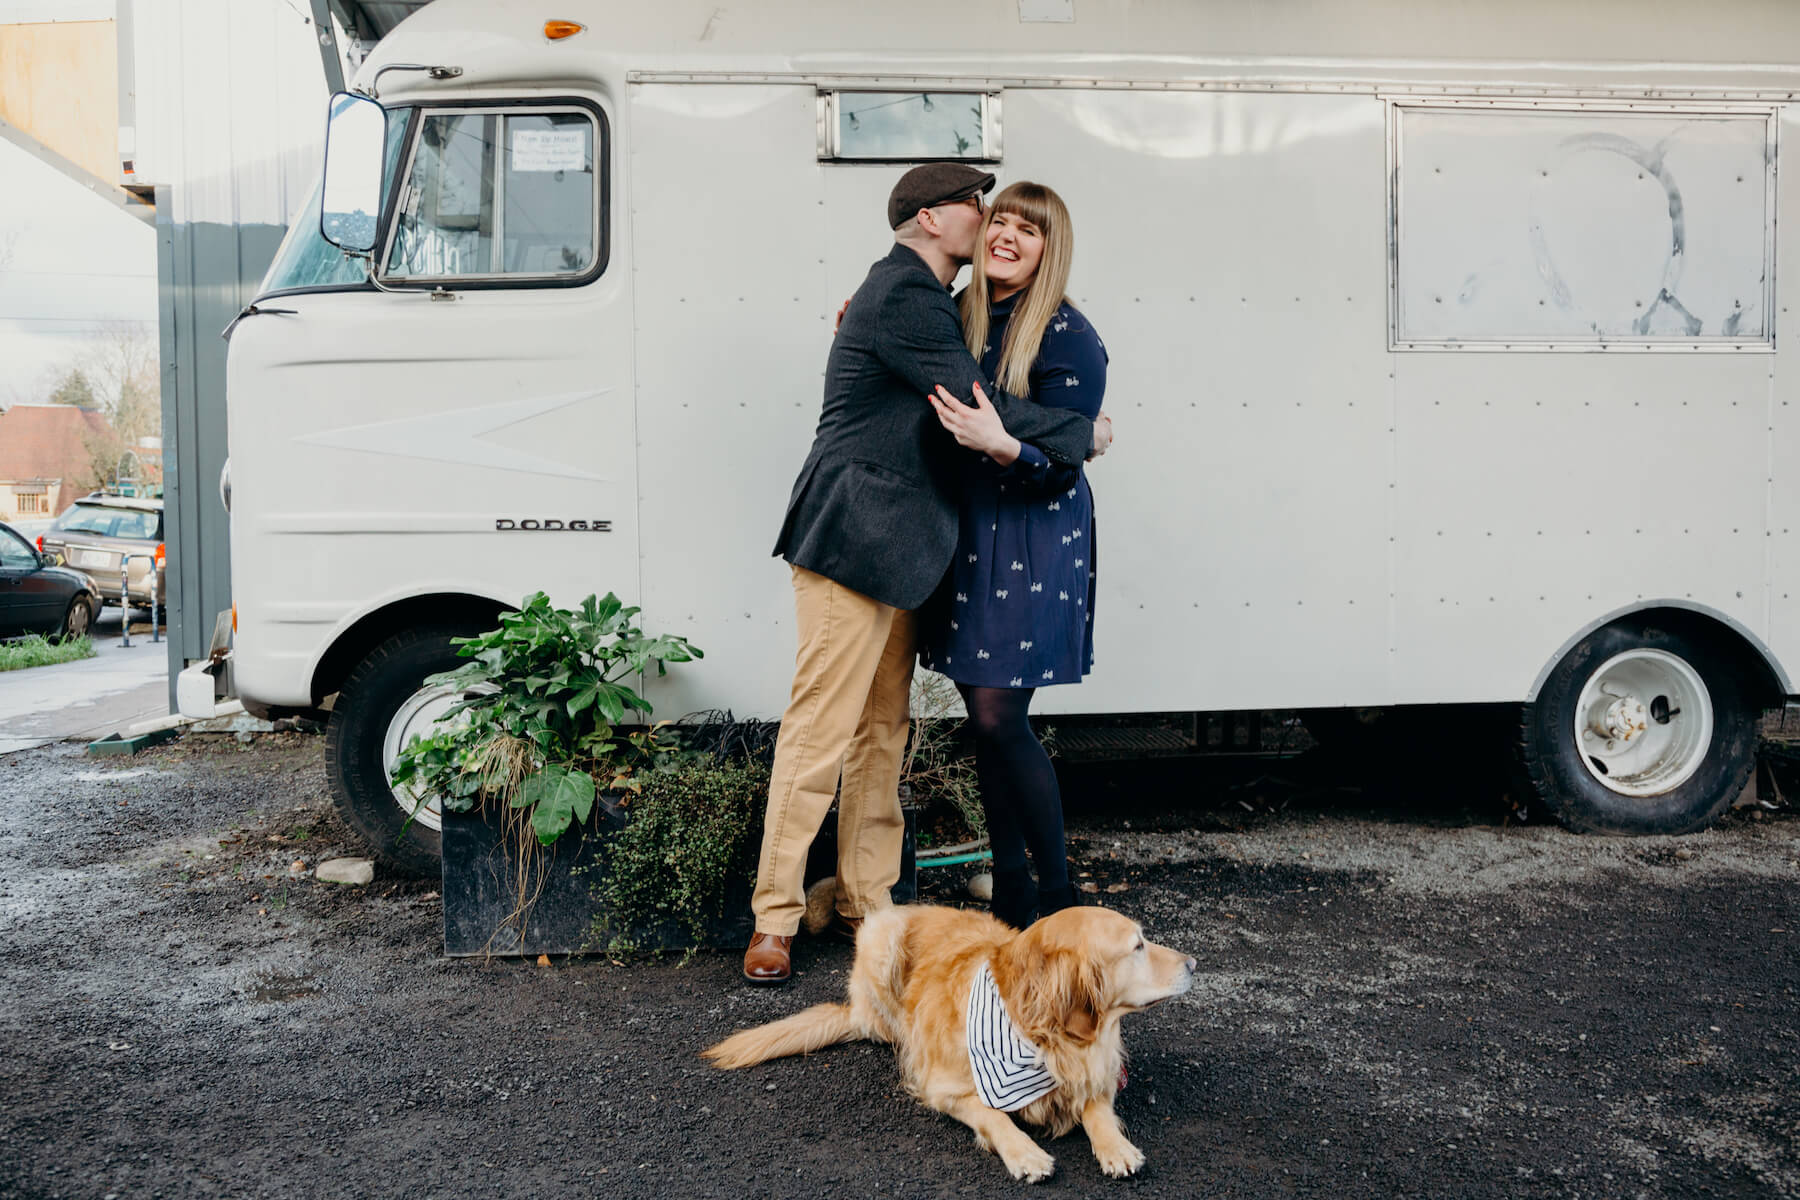 couple with a dog standing in front of a juice truck in portland, Oregon